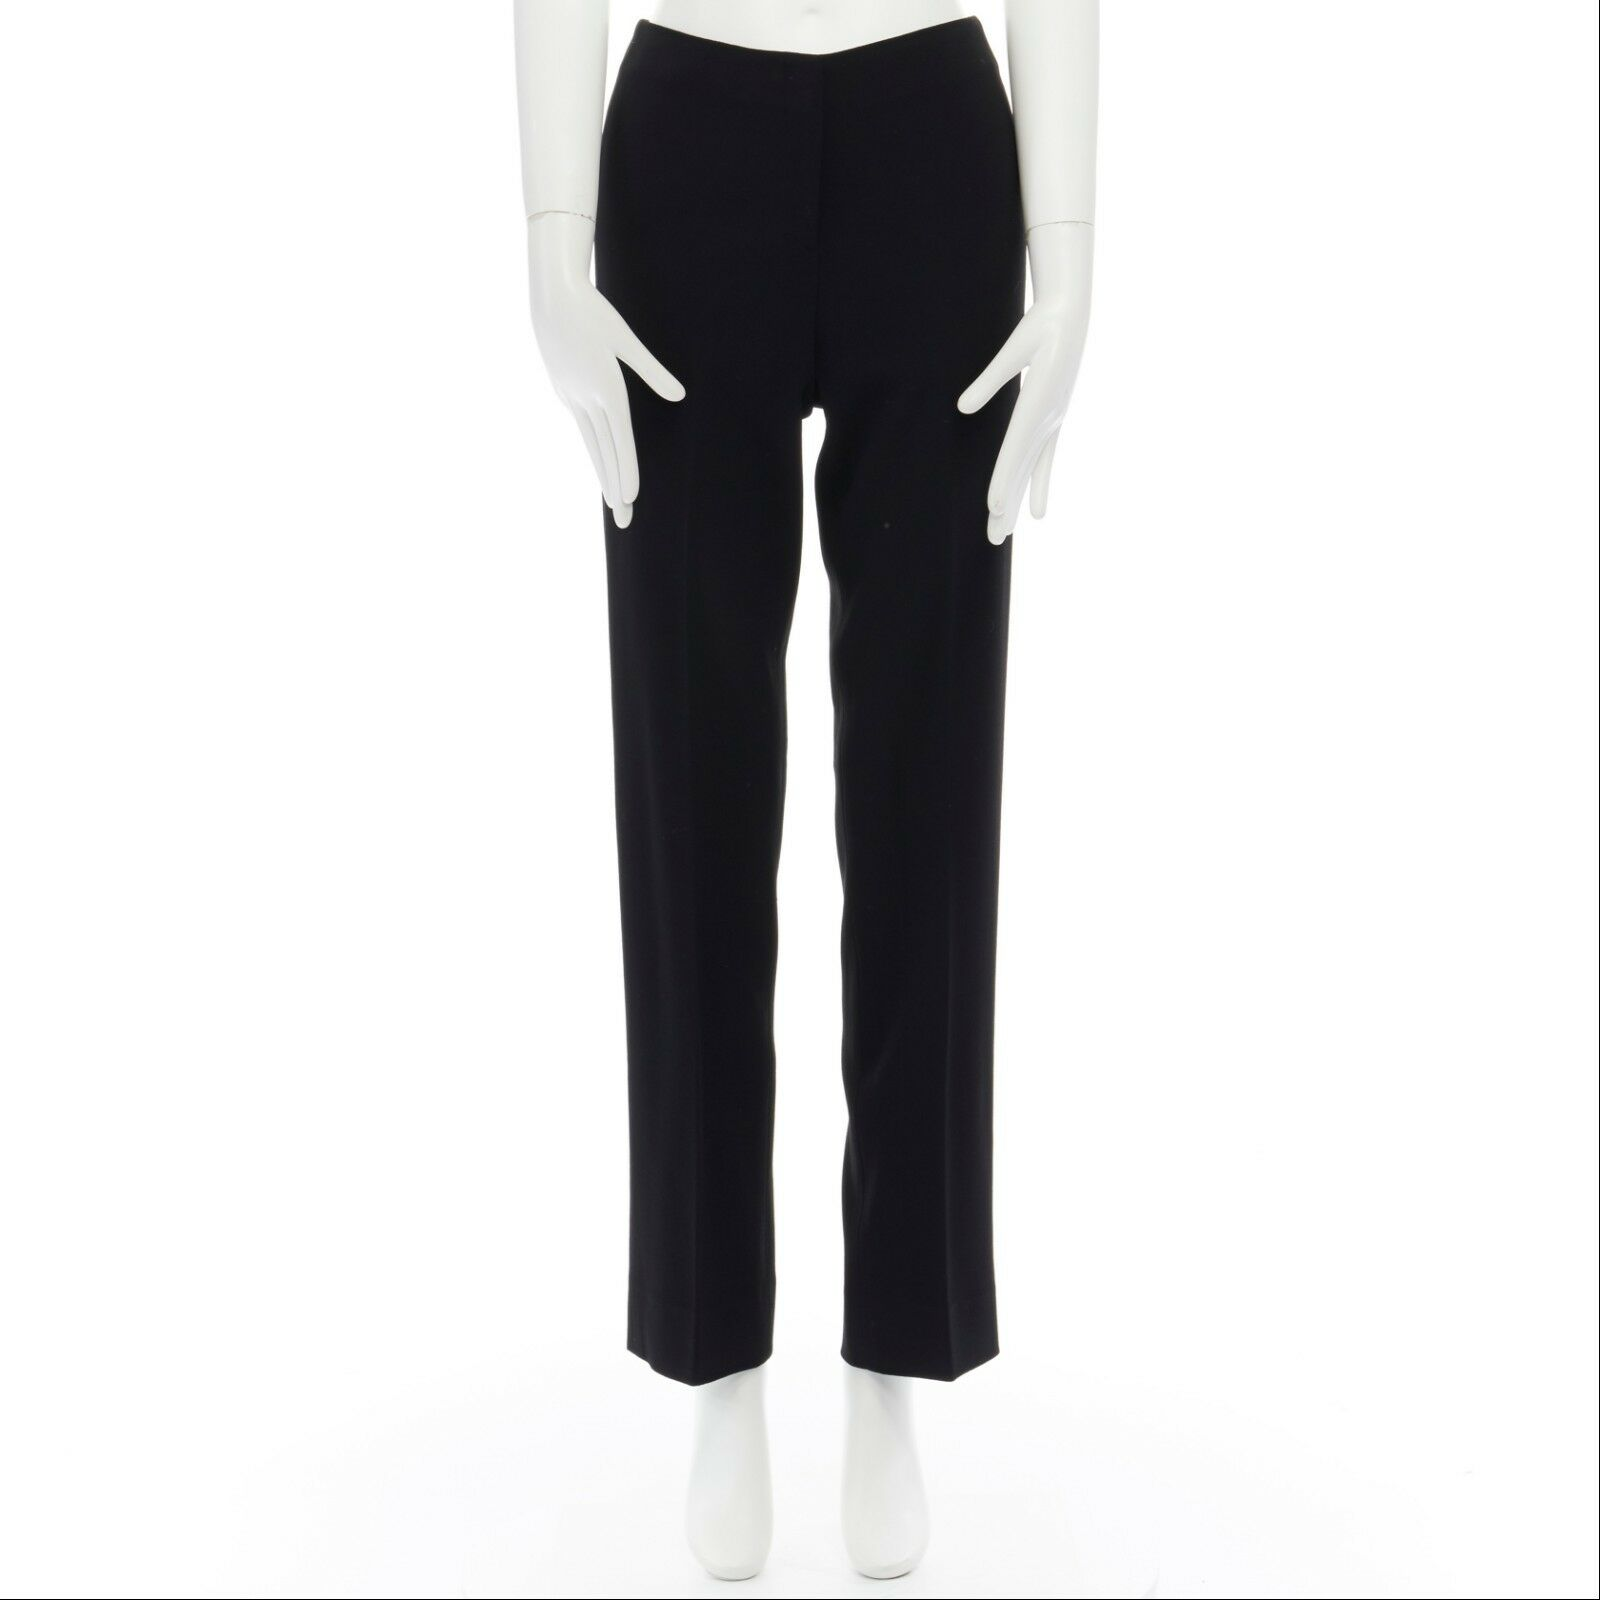 GIORGIO ARMANI 100% wool minimal concealed zip fly trousers pants IT36 XS